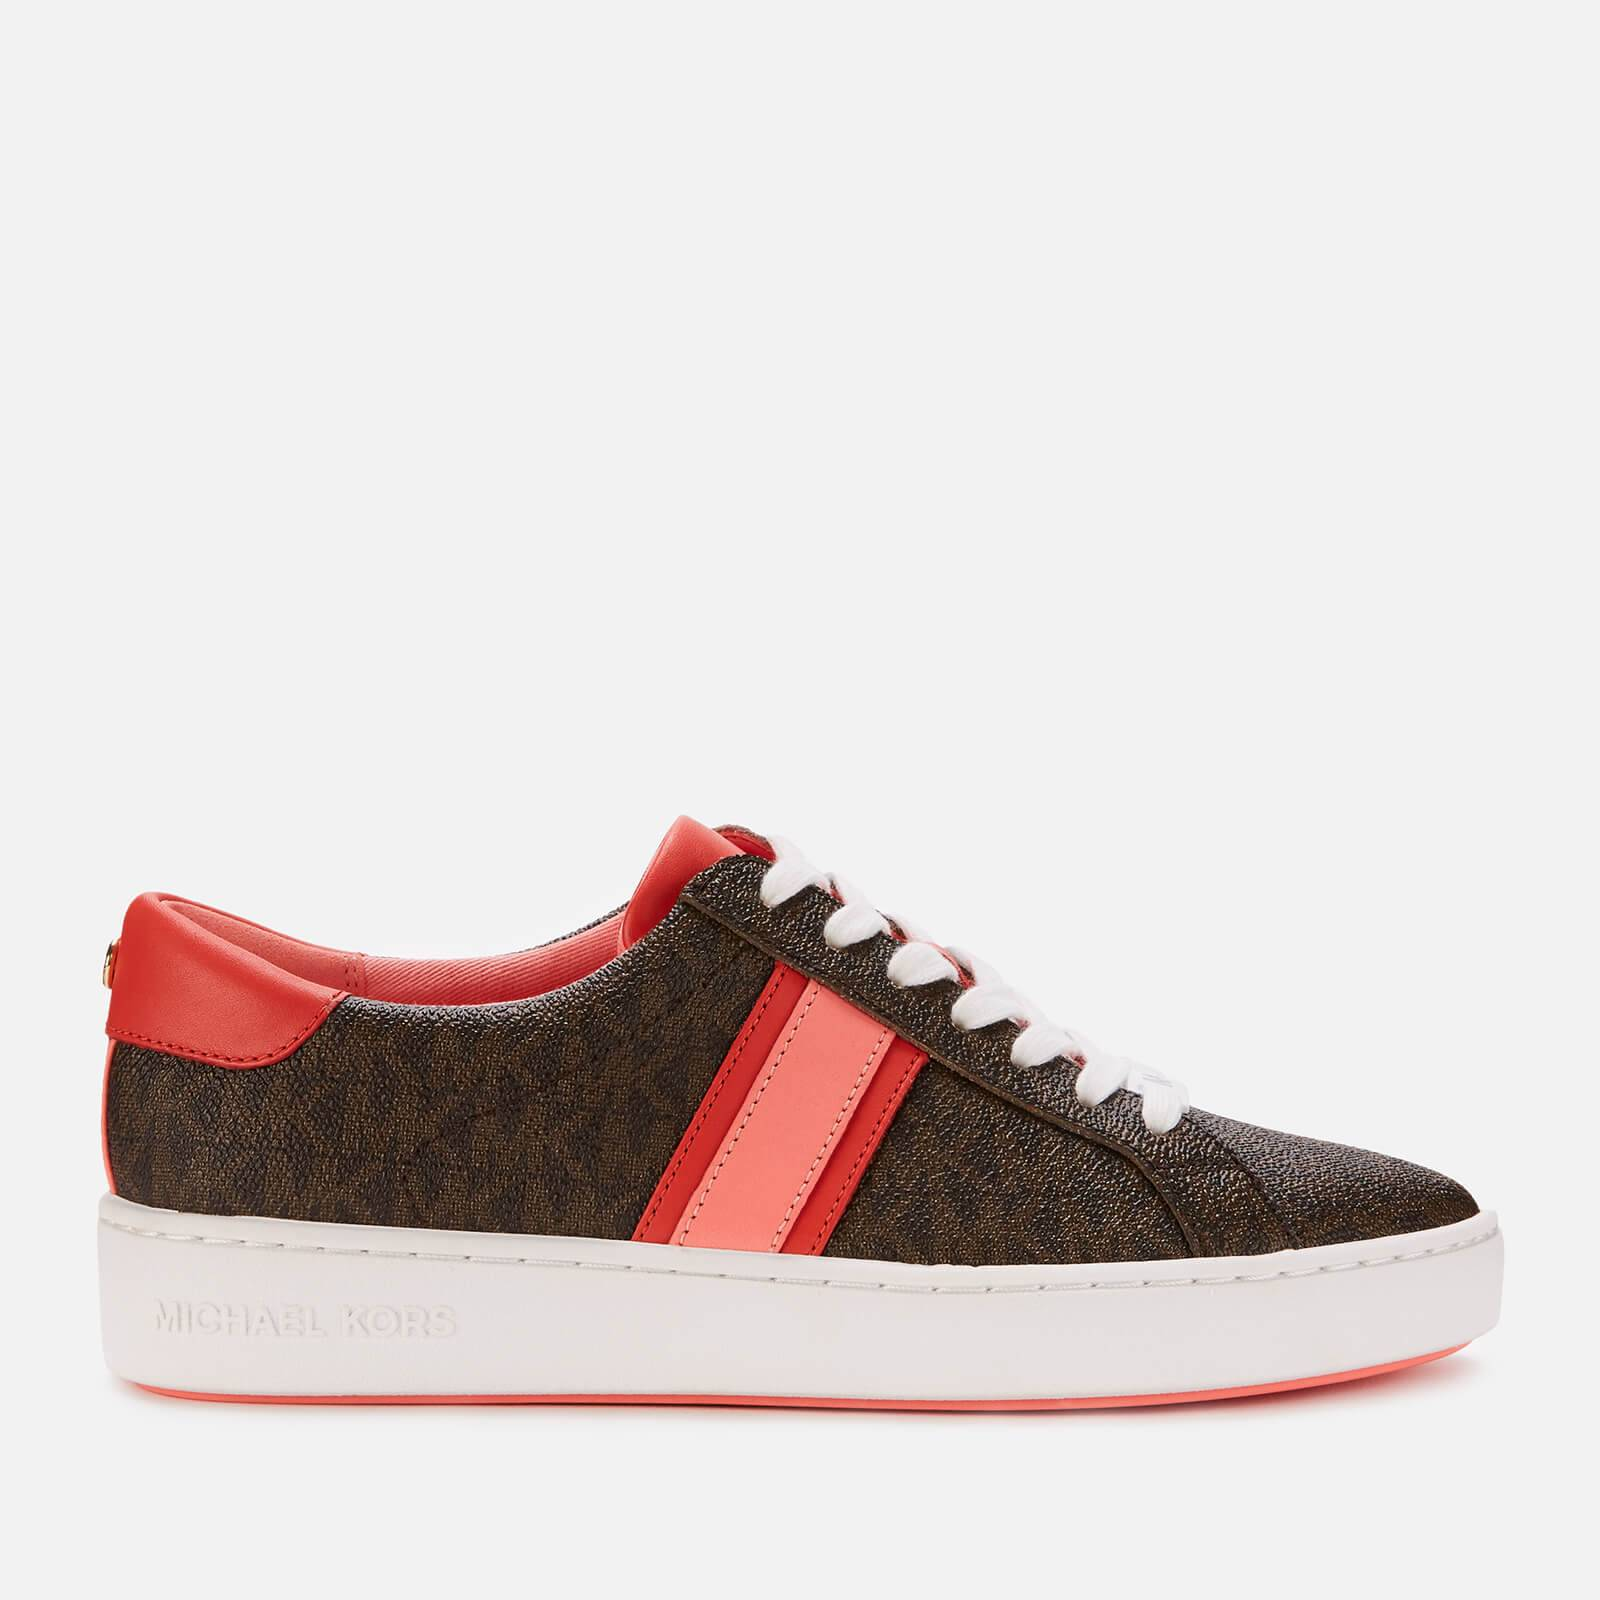 MICHAEL MICHAEL KORS Women's Irving Leather Cupsole Trainers - Brown - UK 3/US 6 - Brown